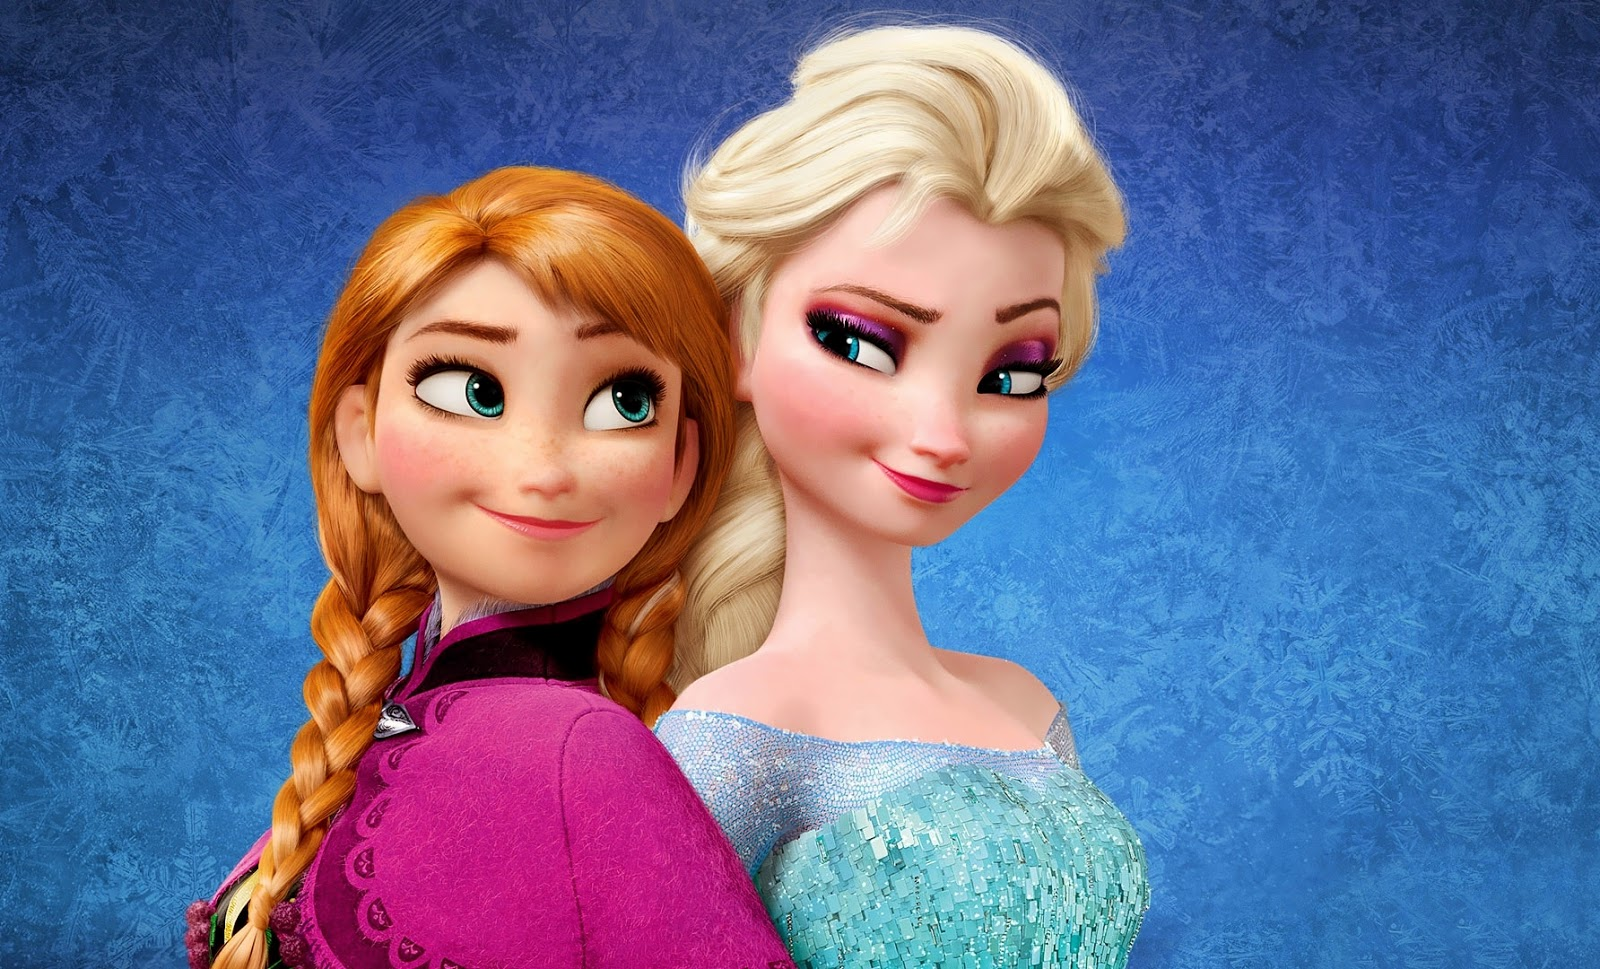 Disney Character Wallpapers -  Frozen - Elsa And Anna